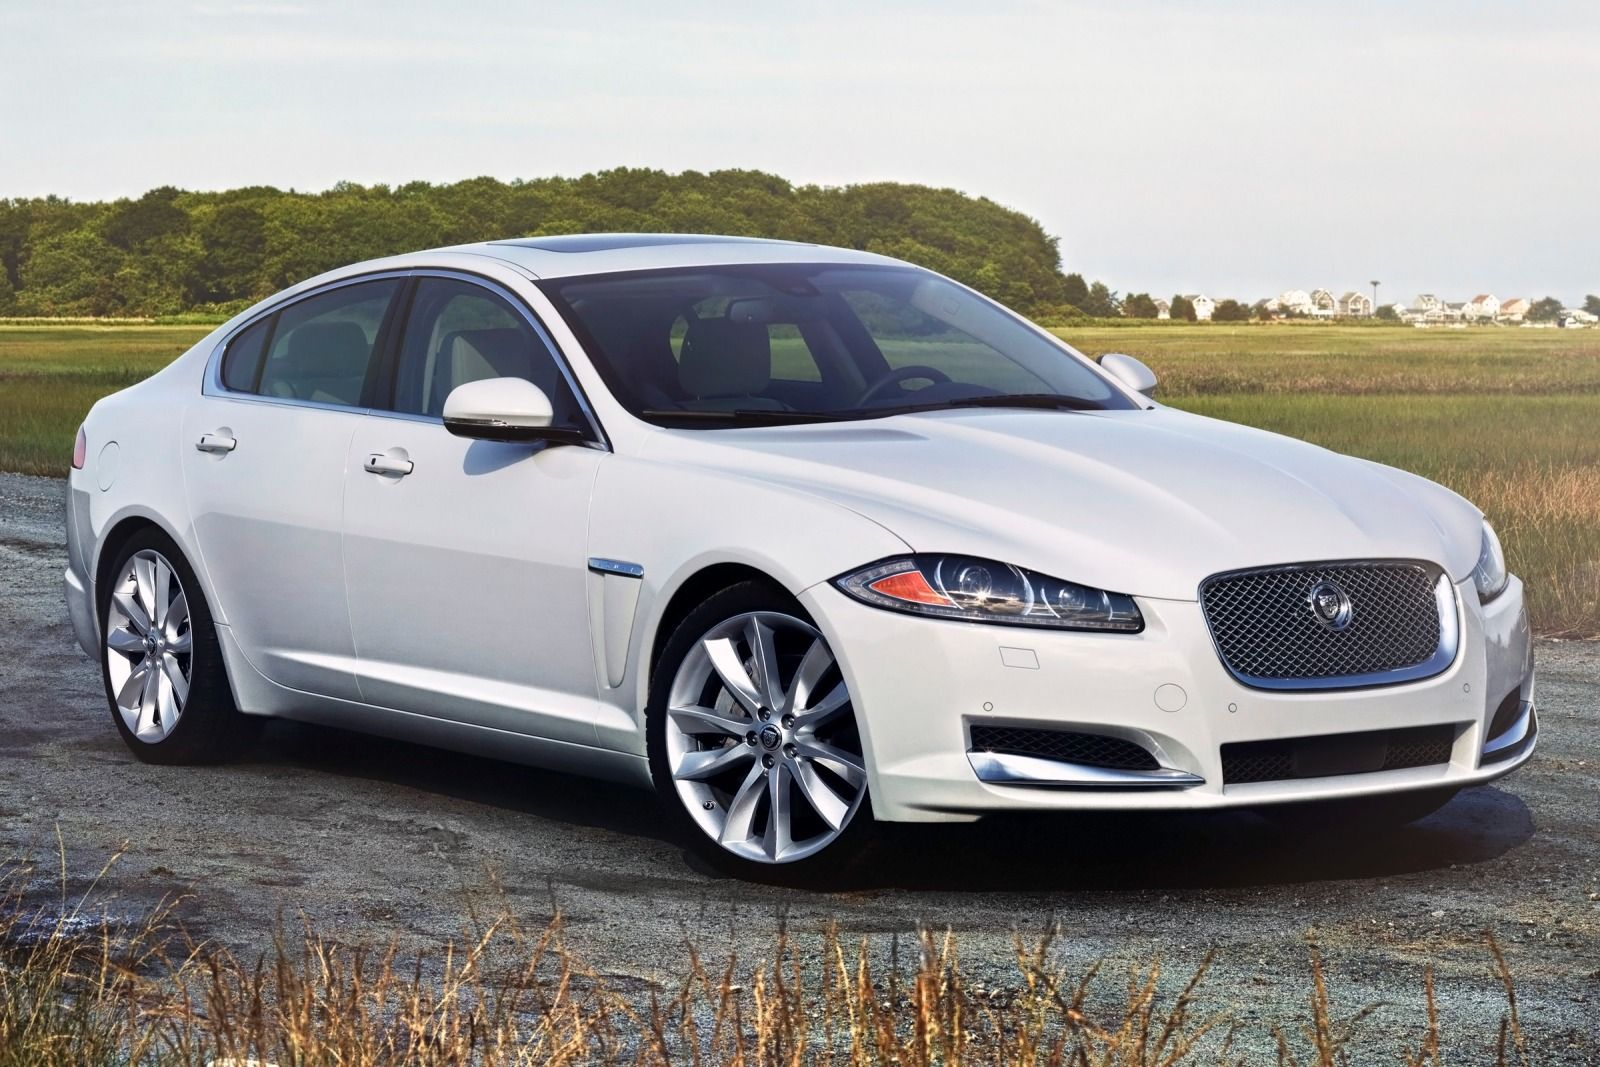 2015 jaguar xf information and photos zombiedrive. Black Bedroom Furniture Sets. Home Design Ideas